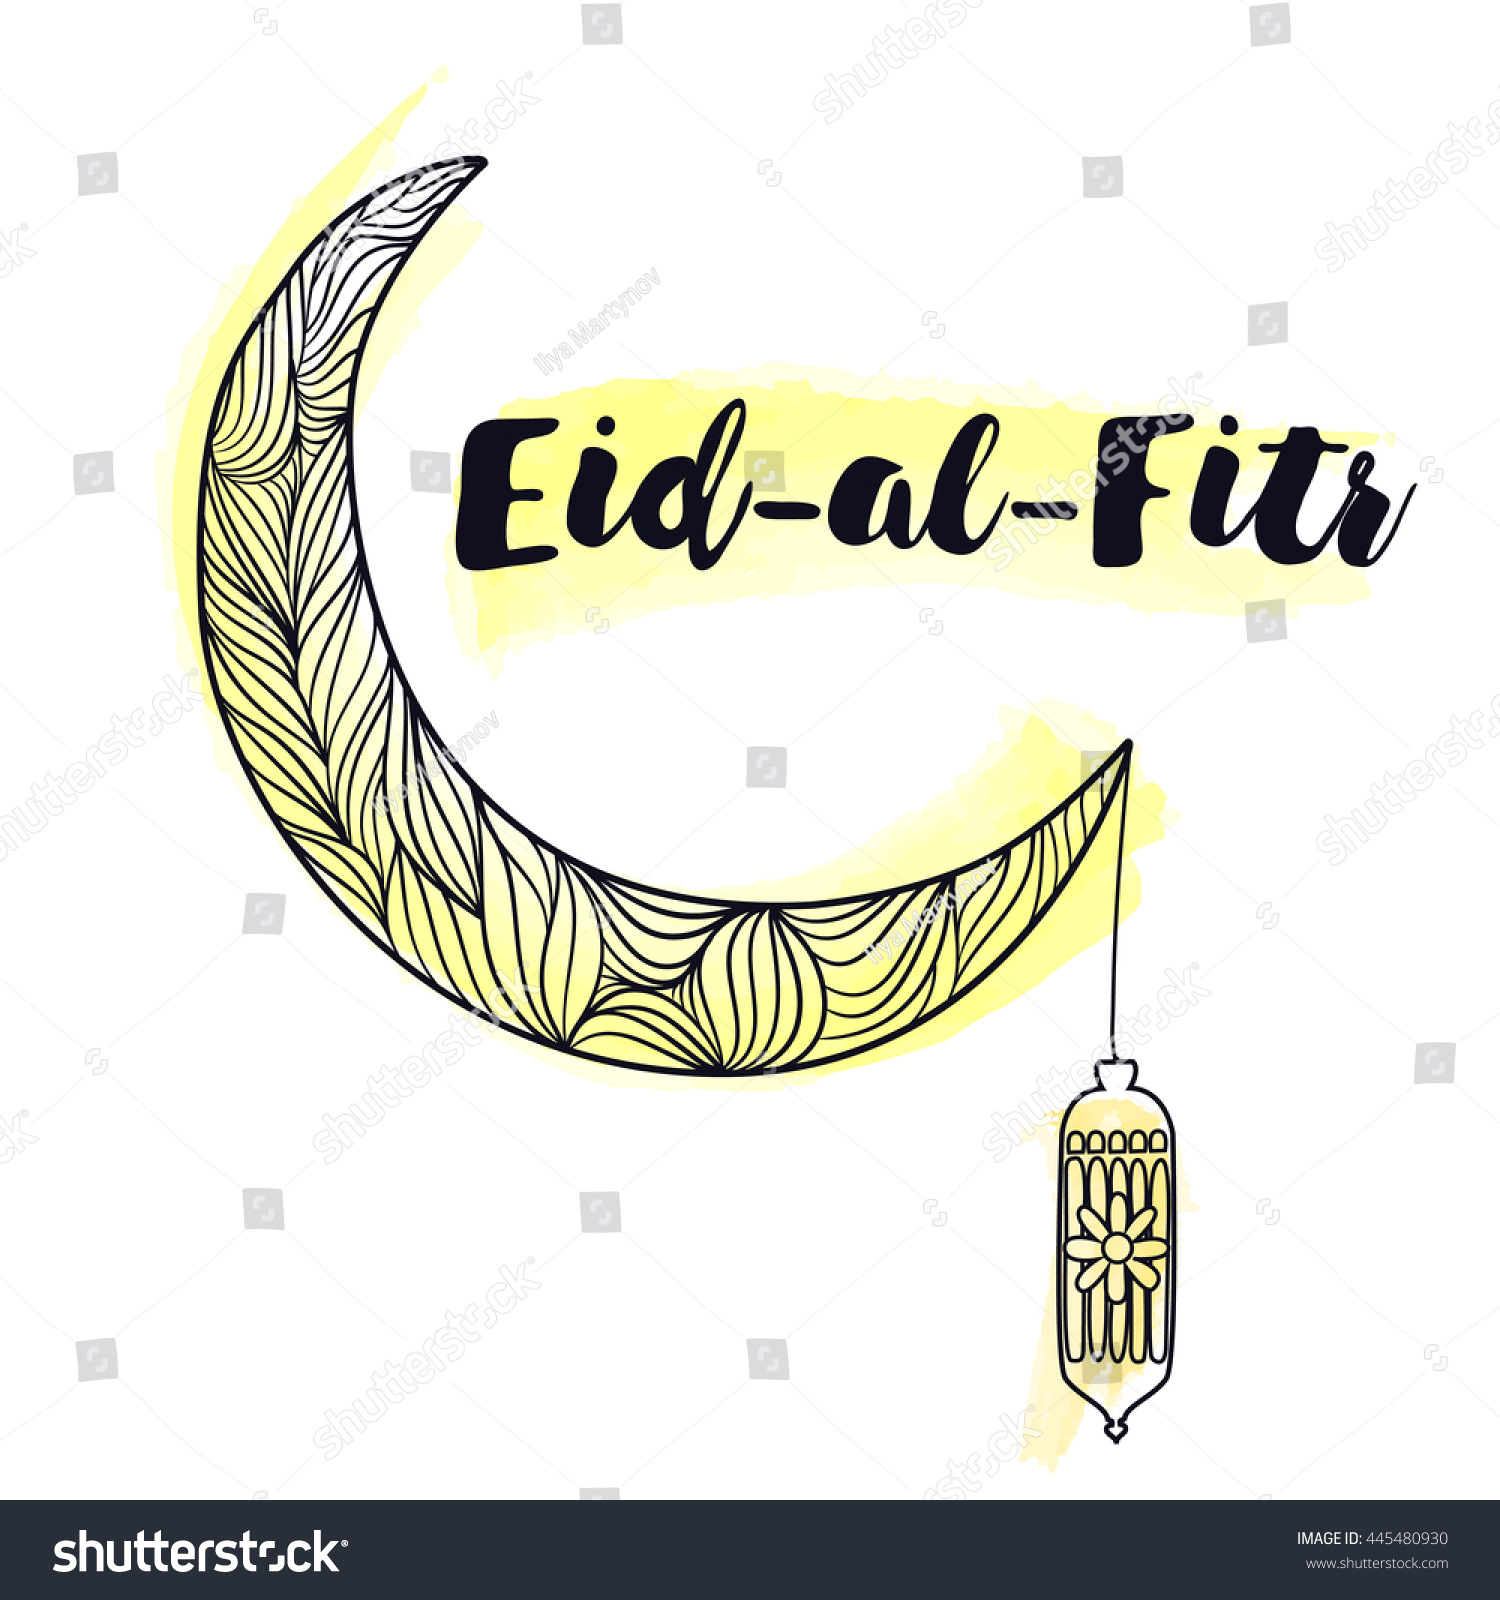 Amazing Eid Mubarak Eid Al-Fitr Decorations - stock-vector--decorated-shiny-crescent-moon-with-text-eid-al-fitr-eid-mubarak-background-for-muslim-community-445480930  Image_662325 .jpg